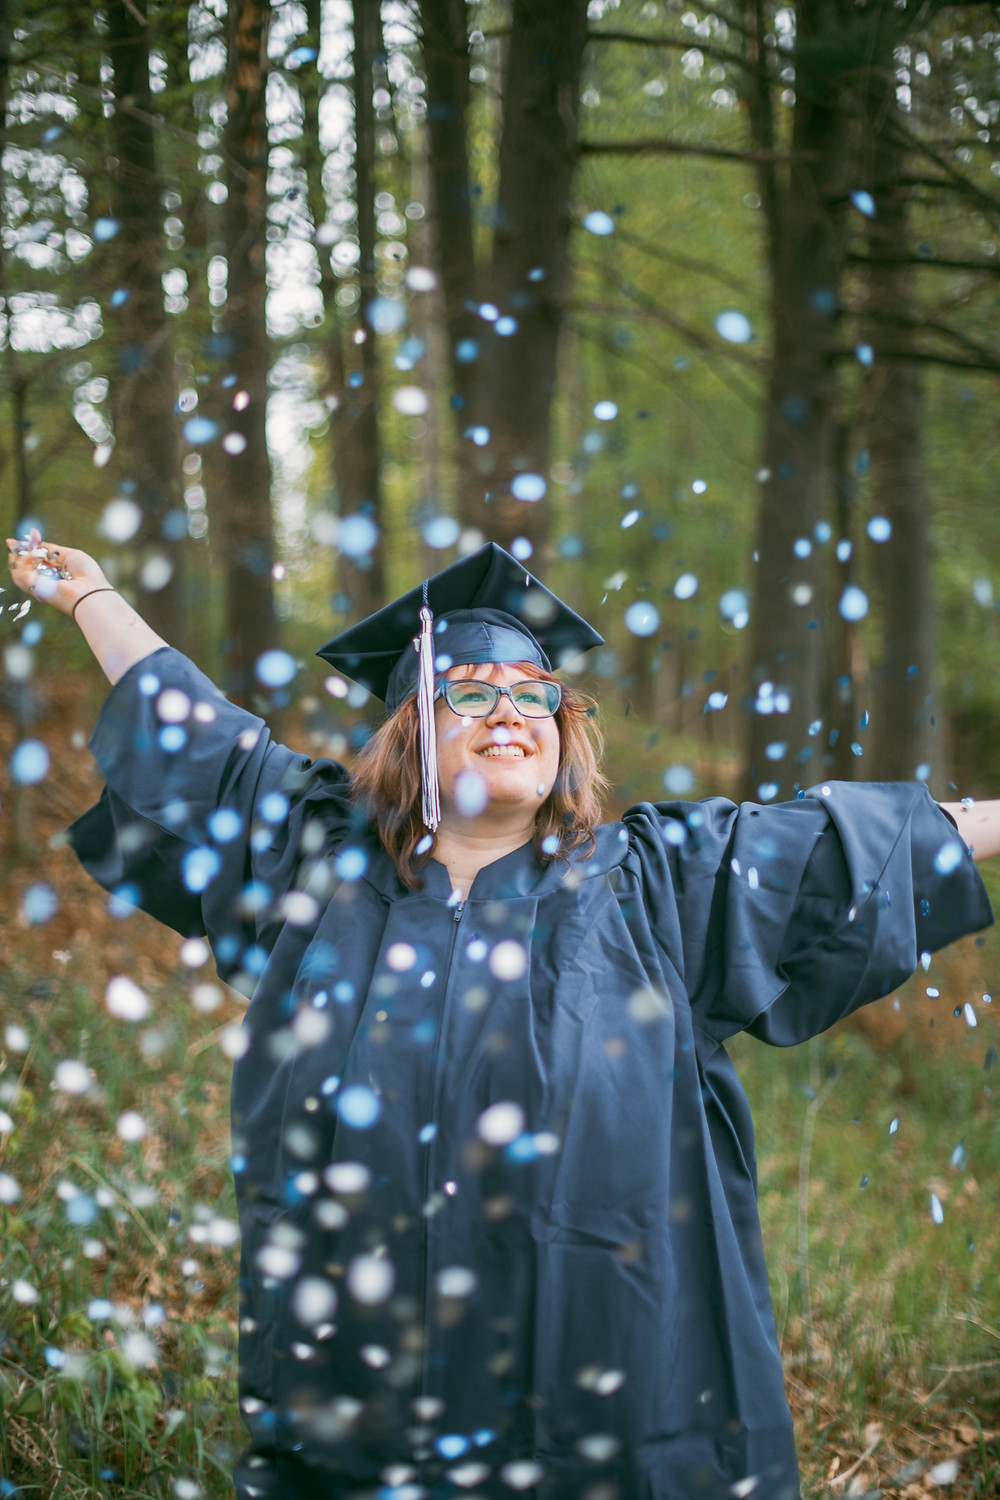 Class of 2020 Graduate throwing blue and silver confetti. Lifestyle senior photography by Anna Gutermuth.